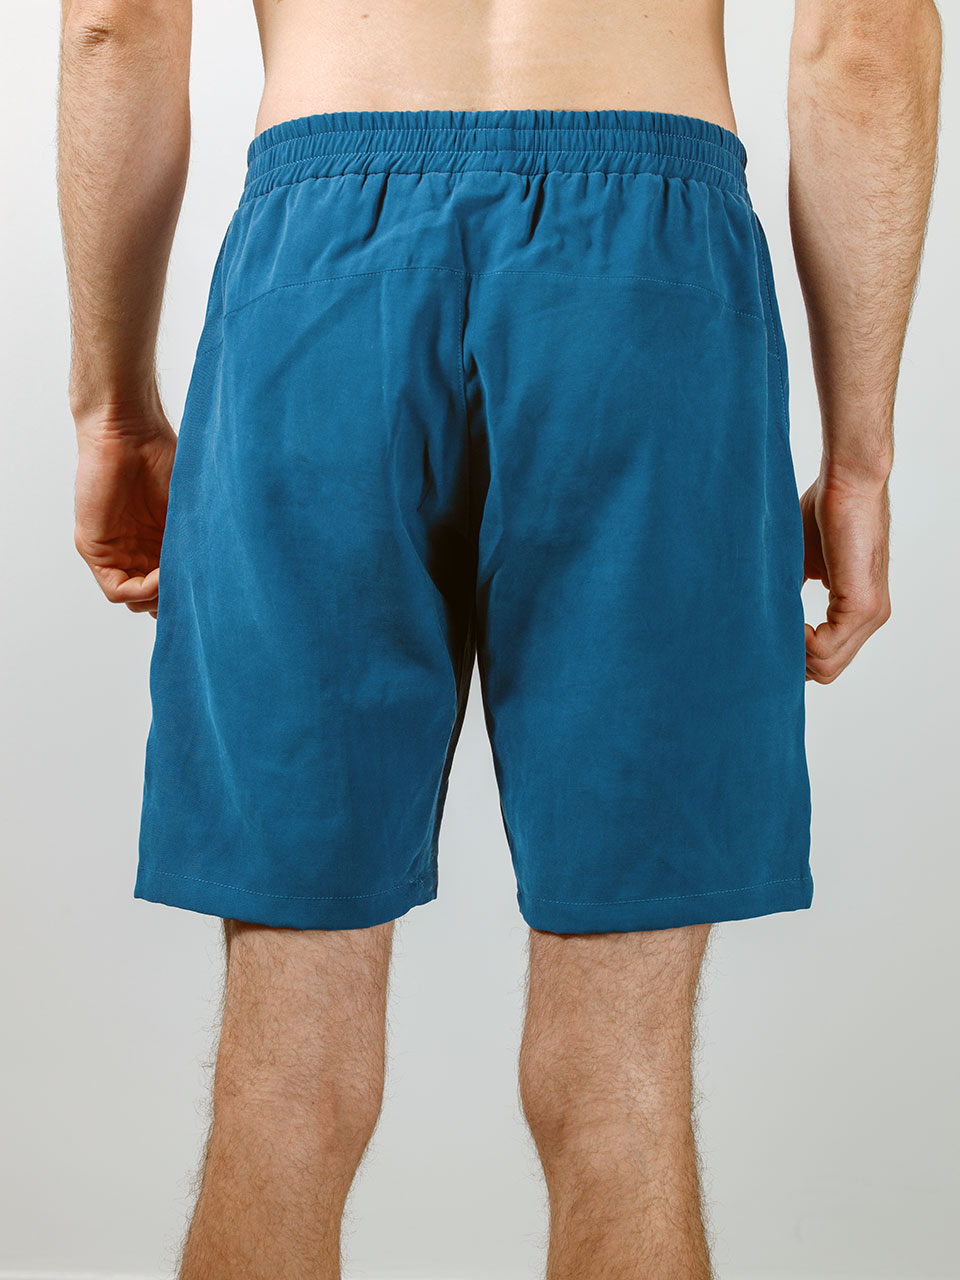 ÉCH Apparel – Back of Ignis shorts